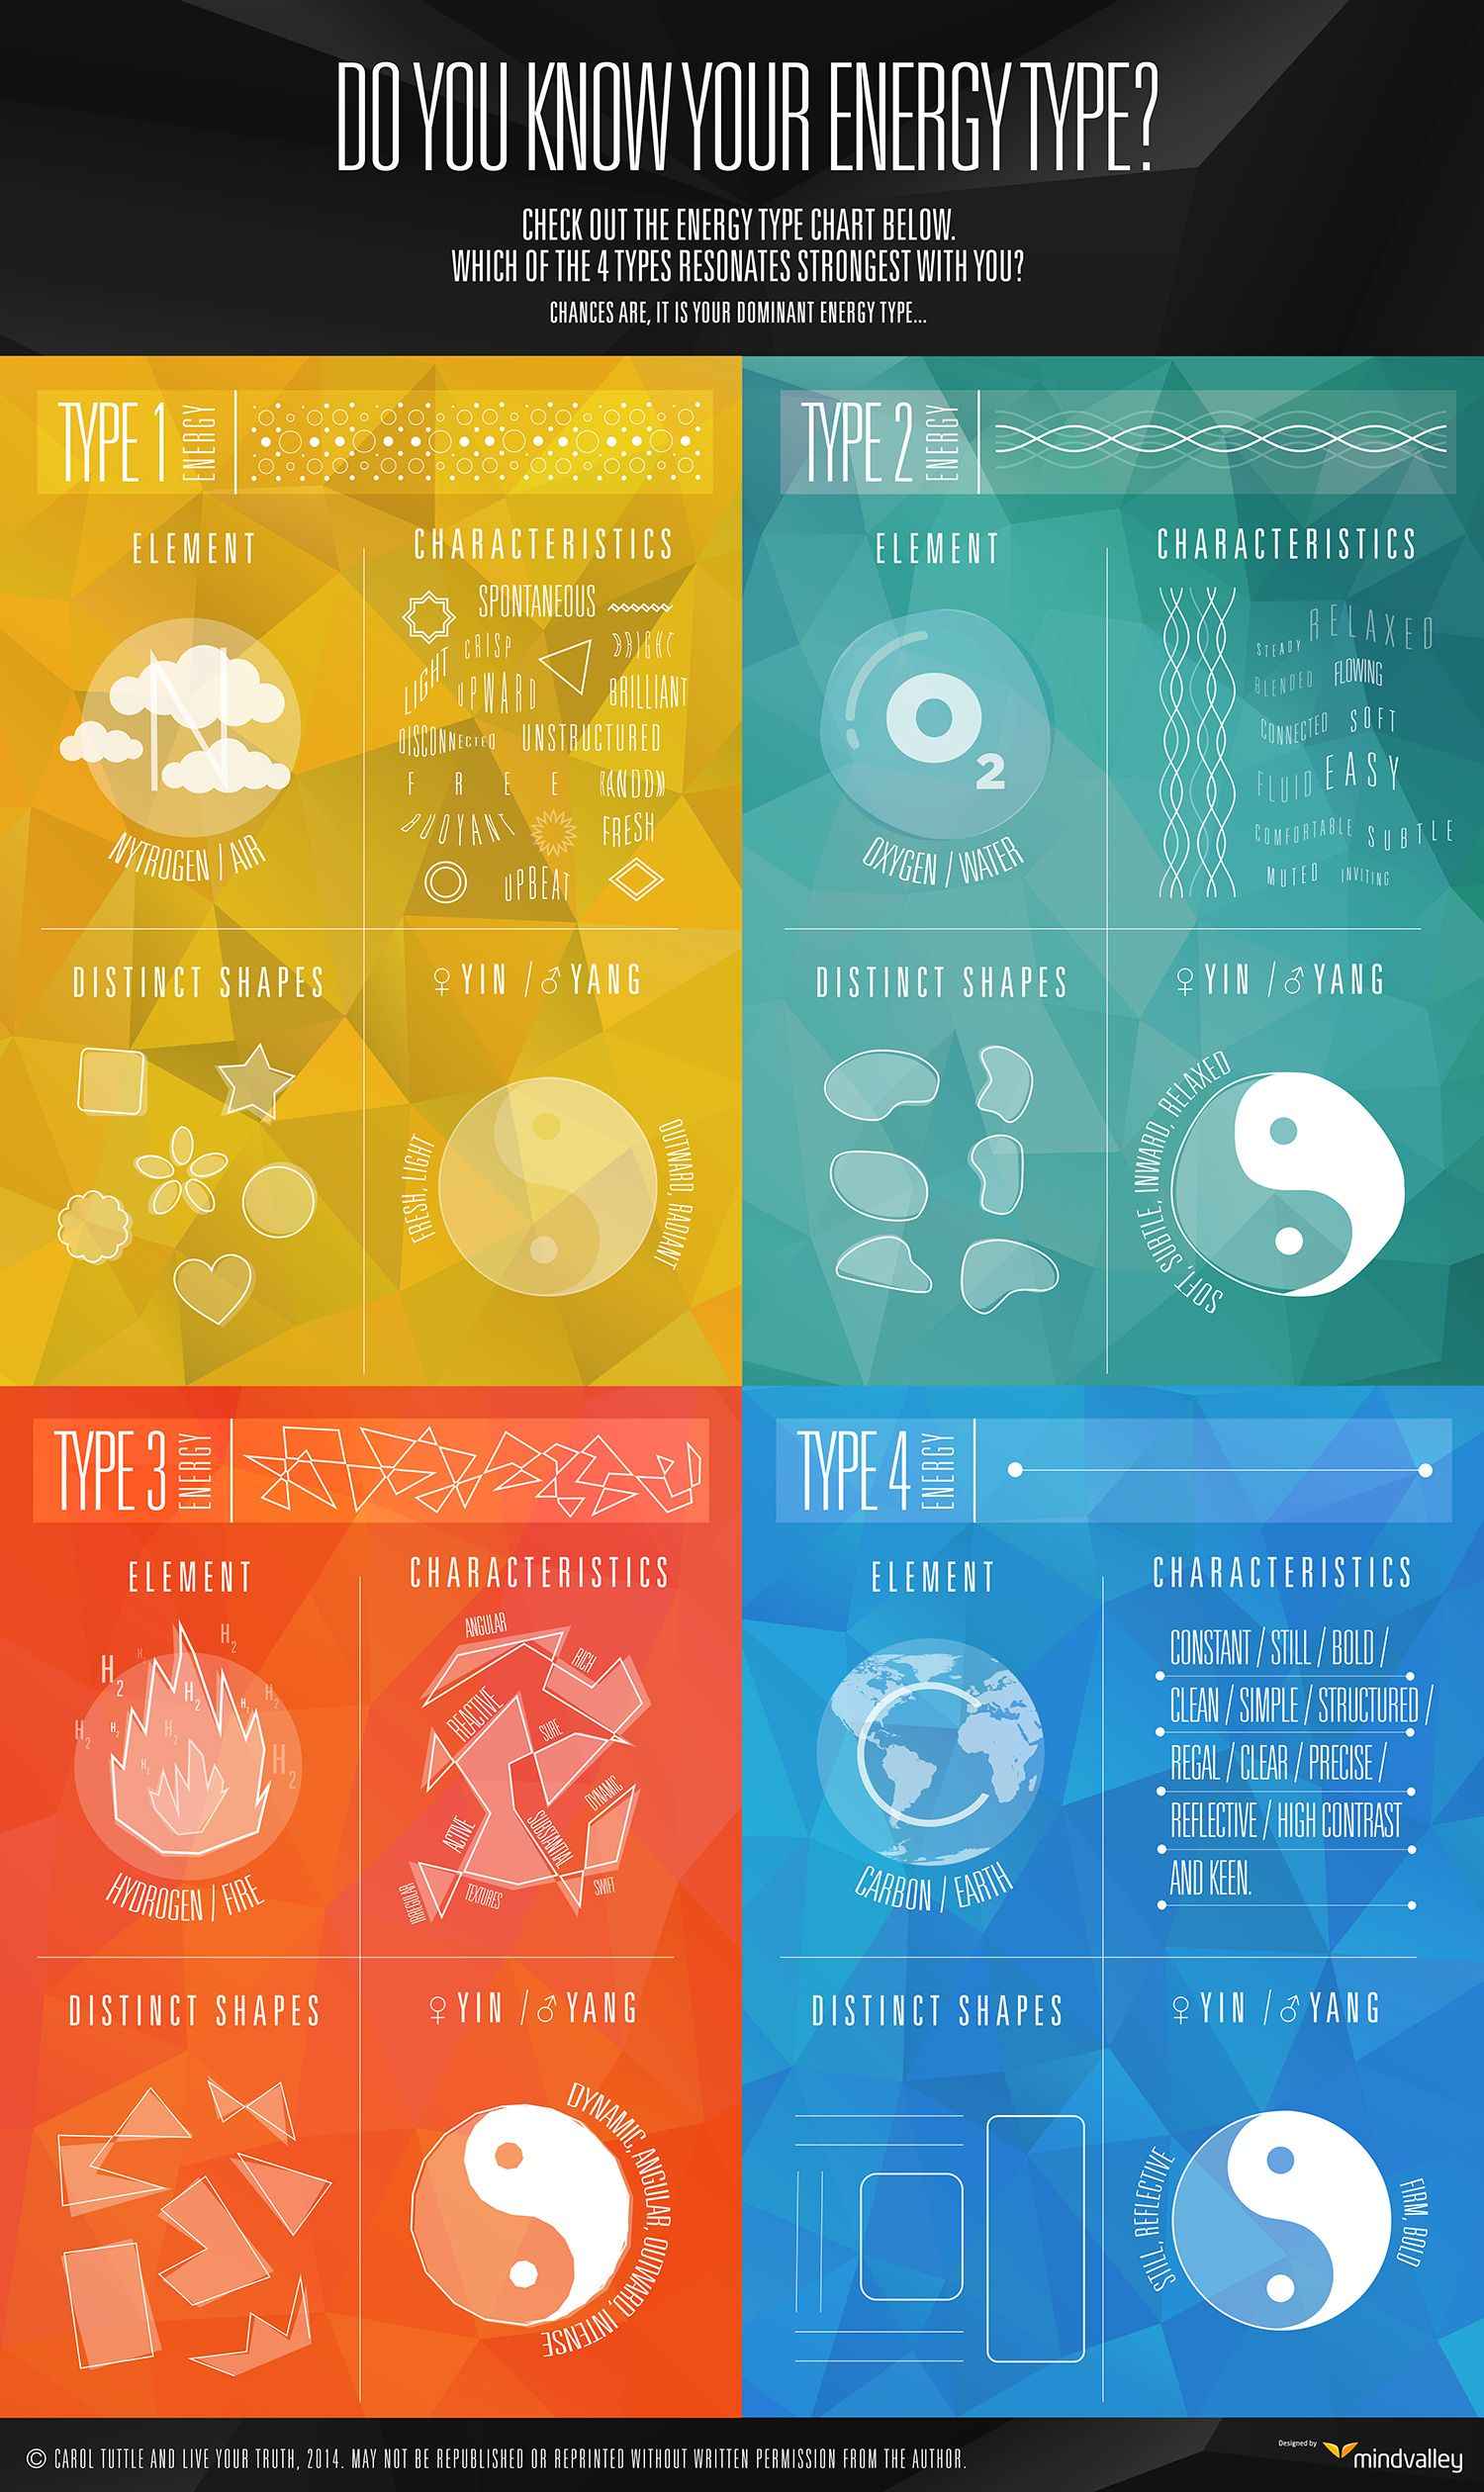 A color therapy chart you can use feng shui color the tao of a color therapy chart you can use feng shui color the tao of dana typography inspiration pinterest feng shui tao and therapy geenschuldenfo Images